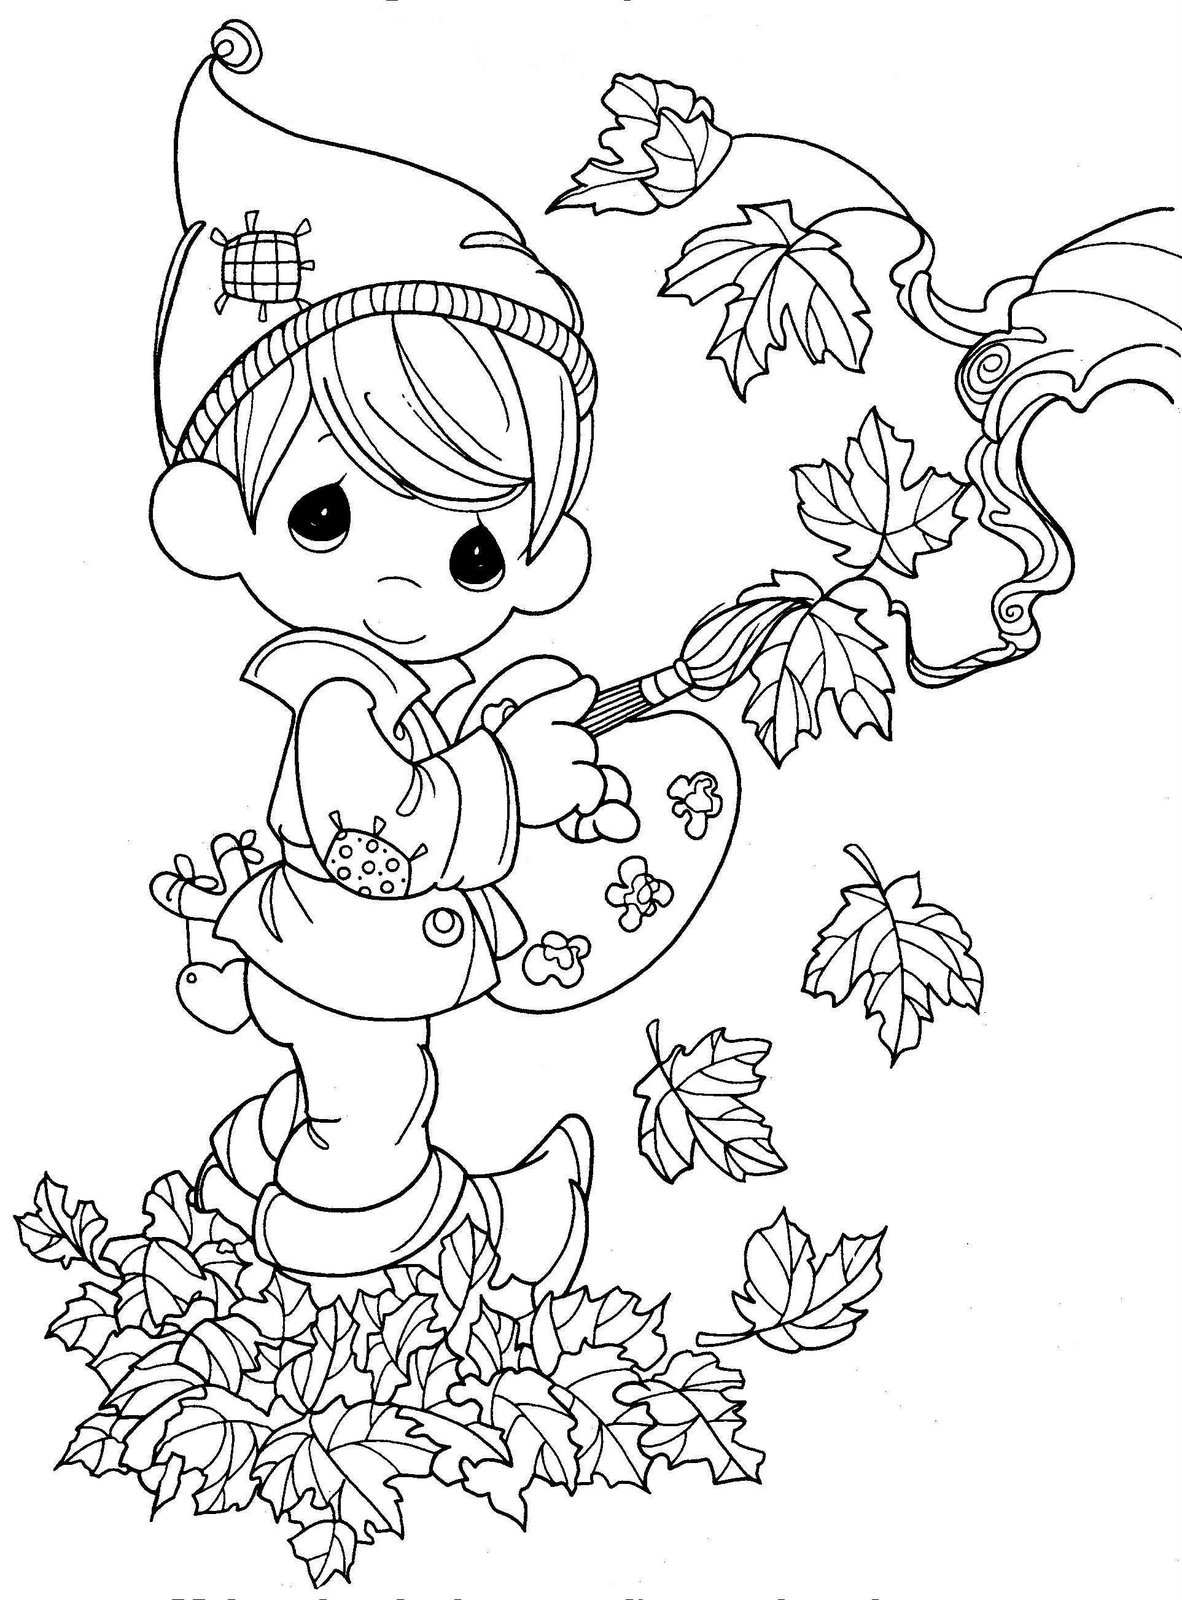 fall themed coloring pages pin by sepideh sadrr on fall art fall coloring pages fall coloring pages themed